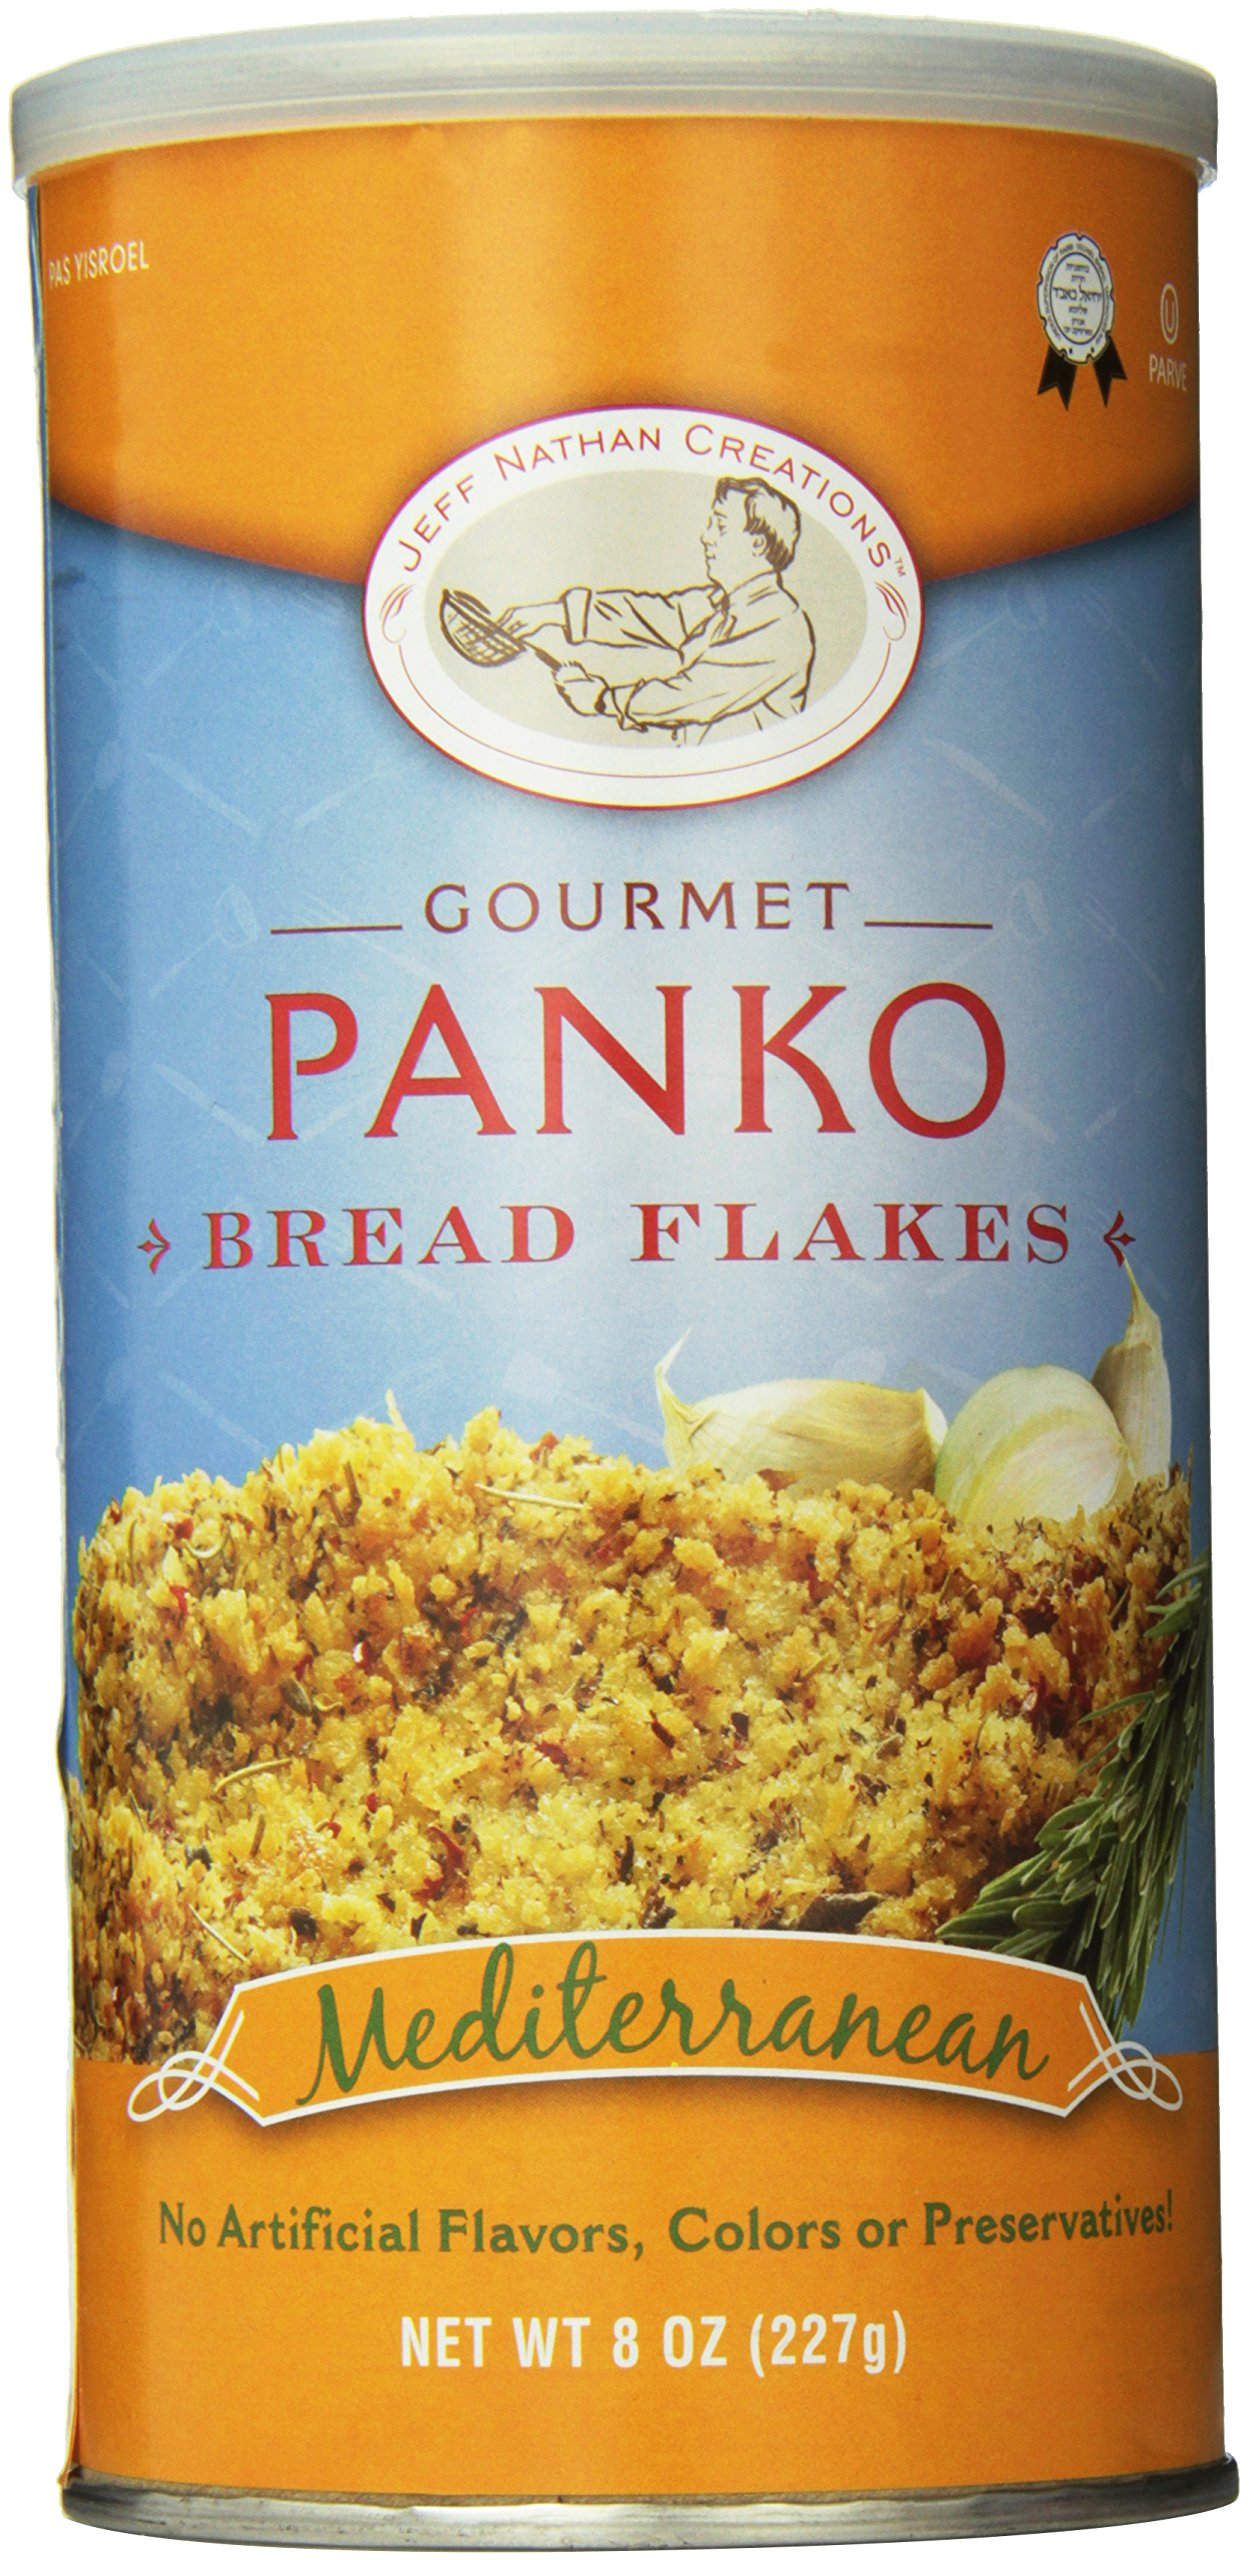 Jeff Nathan Creations Chef Gourmet Panko Bread Flakes Italian Blend, 8 Ounce